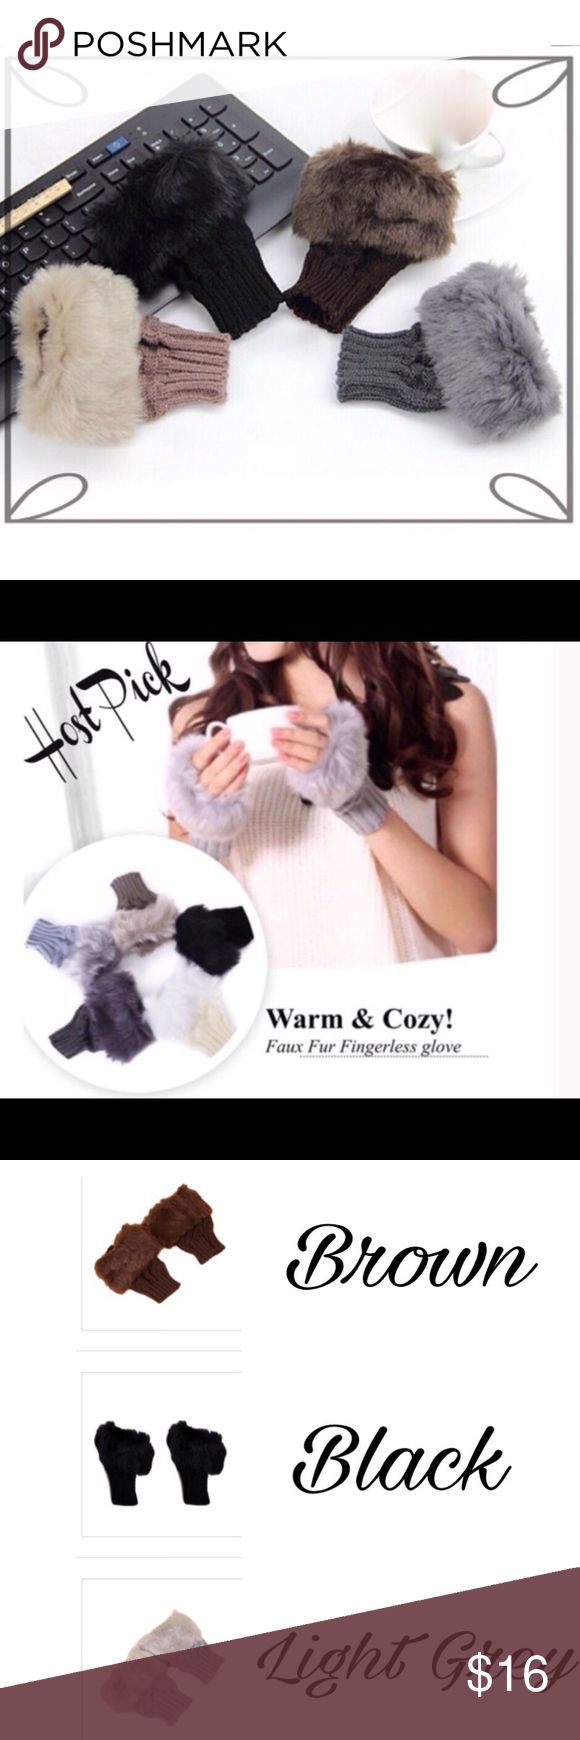 Fingerless gloves eso - Warm And Cozy Faux Fur Fingerless Gloves Boutique